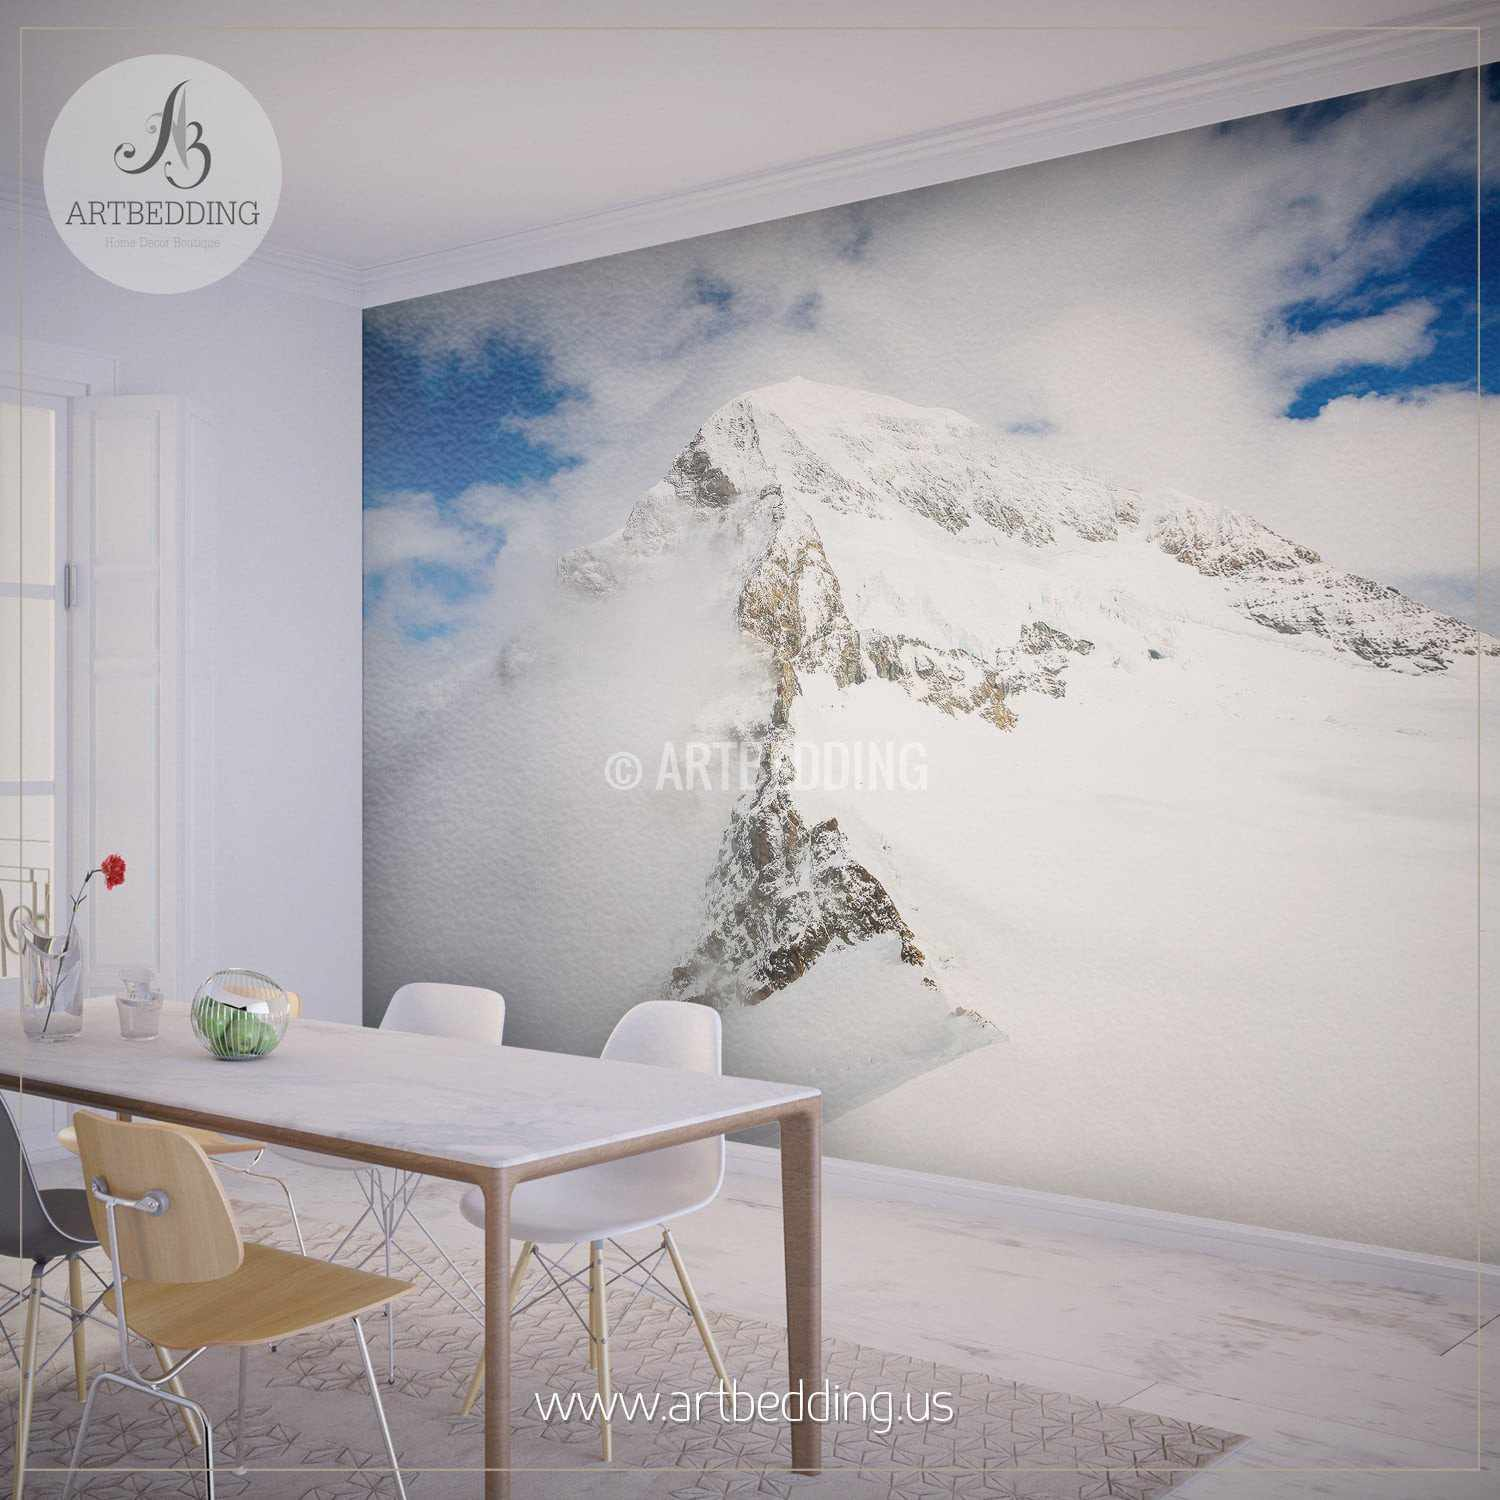 ... Snow Mountain Wall Mural, Self Adhesive Peel U0026 Stick Photo Mural,  Forest Wall Mural ... Part 81